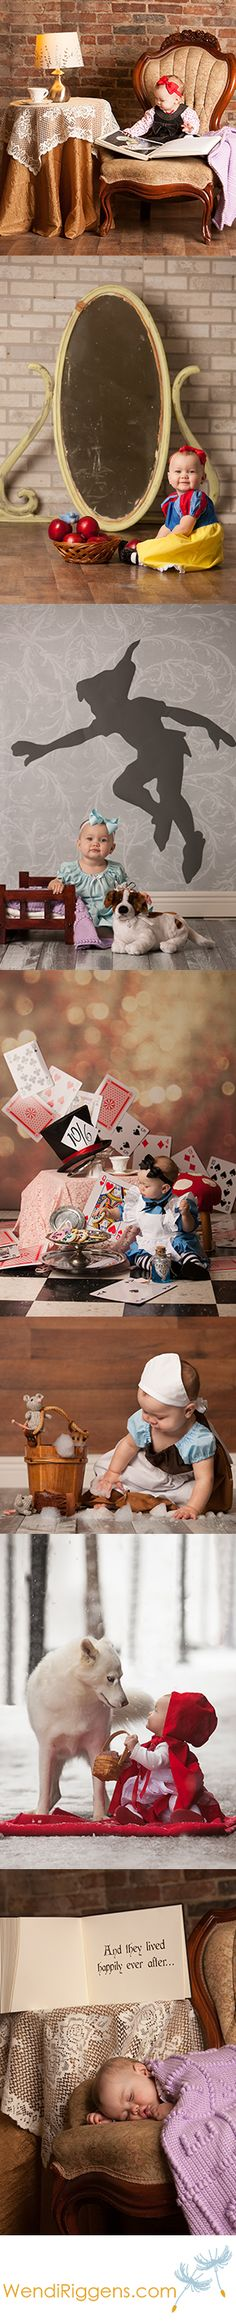 Once Upon A Time – Fairytale Baby Session – Snow White, Cinderella, Alice in Wonderland, Peter Pan & Wendy, Little Red Riding Hood & The Big Bad Wolf - Absolutely precious!